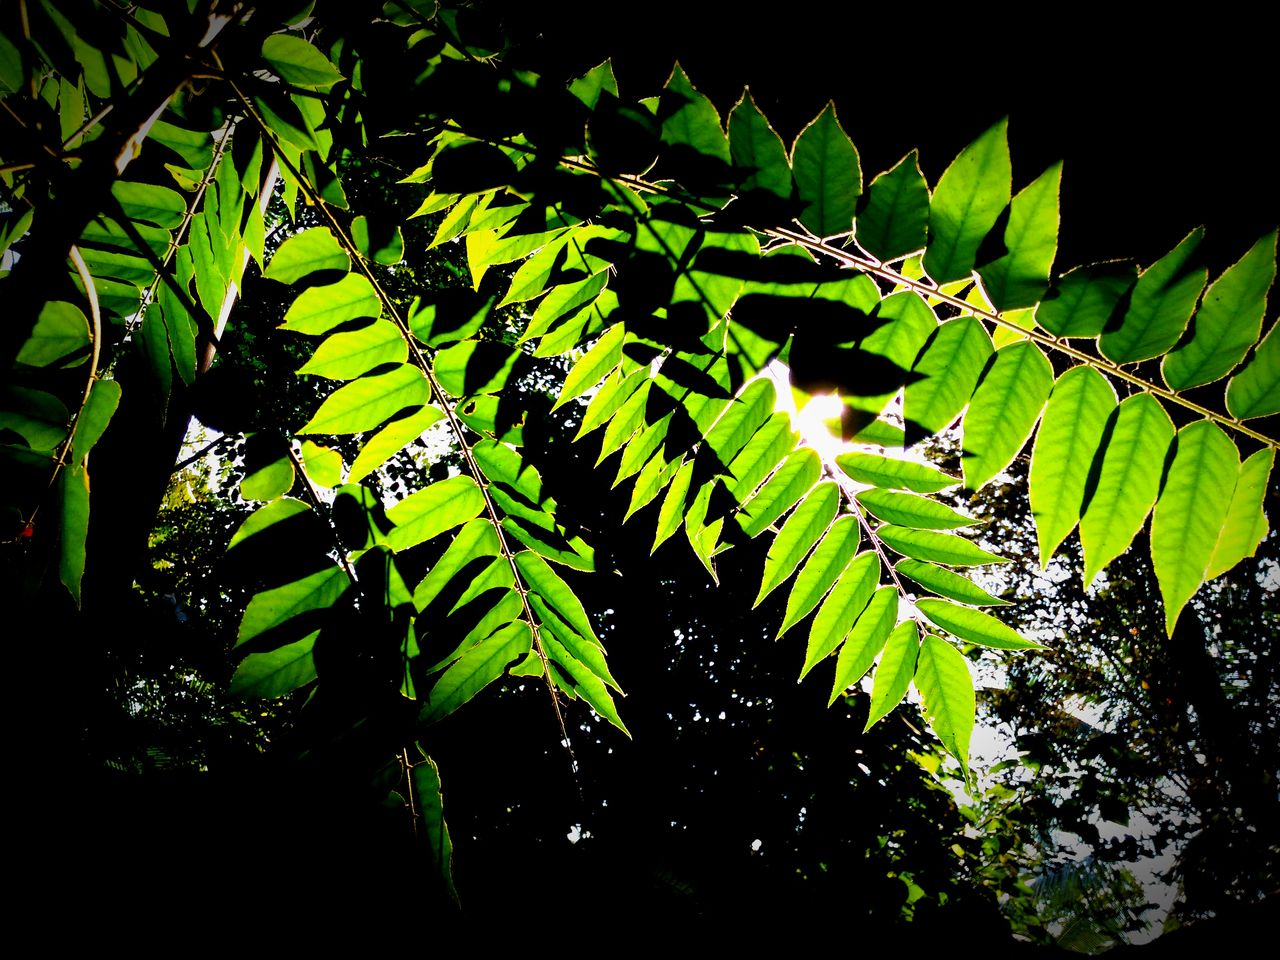 Leaf Nature Green Color Growth Black Background No People Plant Beauty In Nature Full Frame Backgrounds Outdoors Outline Light And Shadows Innovation Freshness My Point Of View My Unique Style My Smartphone Life